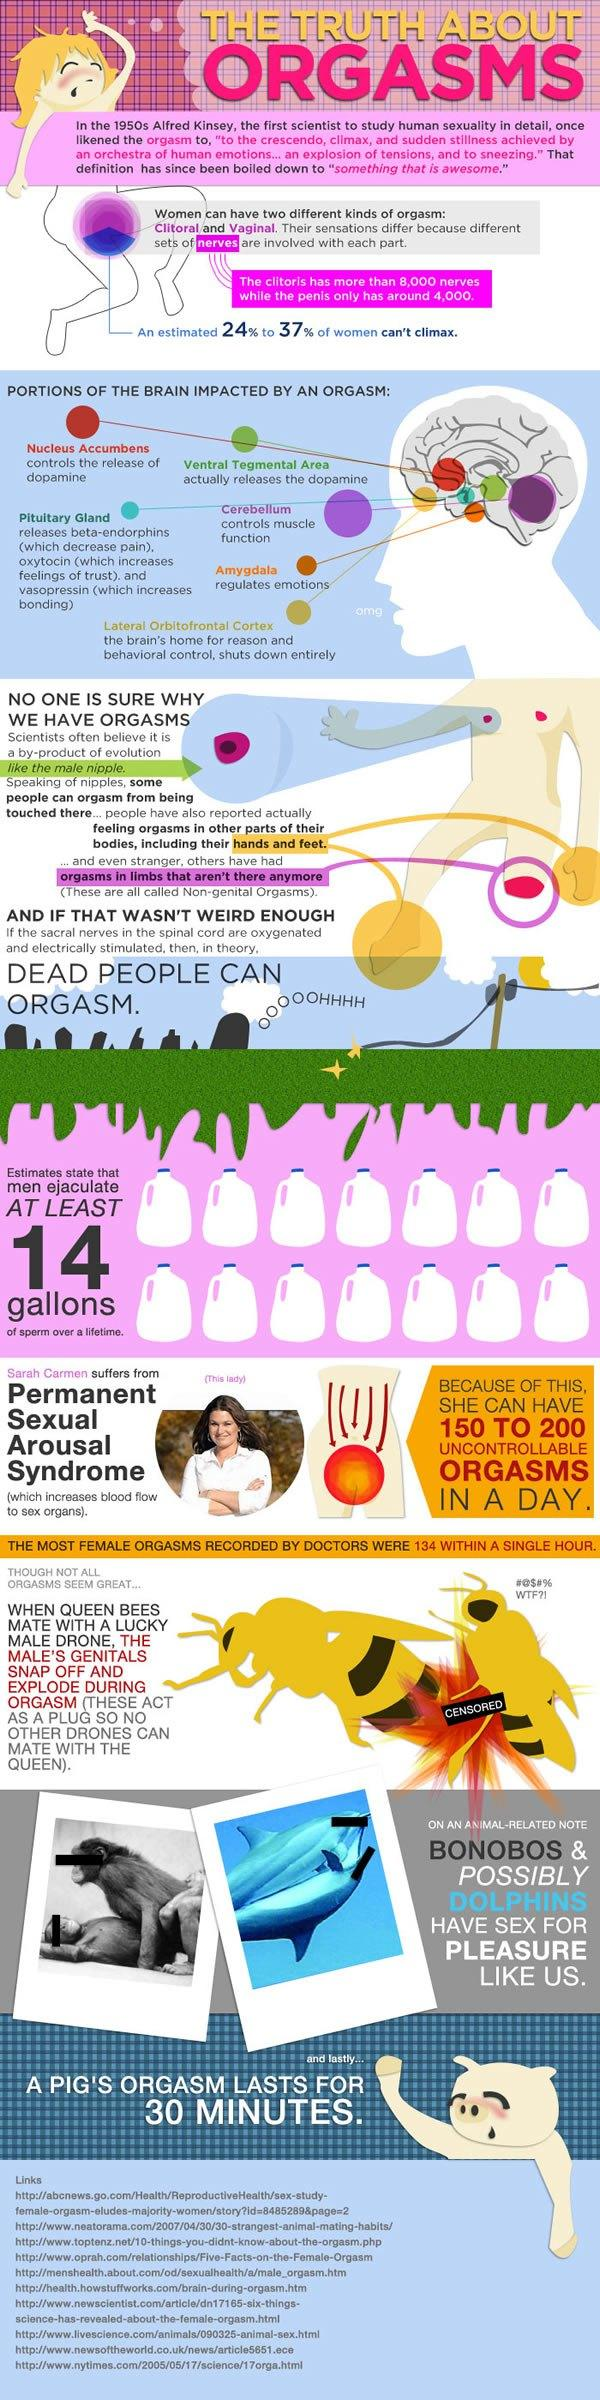 oasdom.com - the truth about orgasms